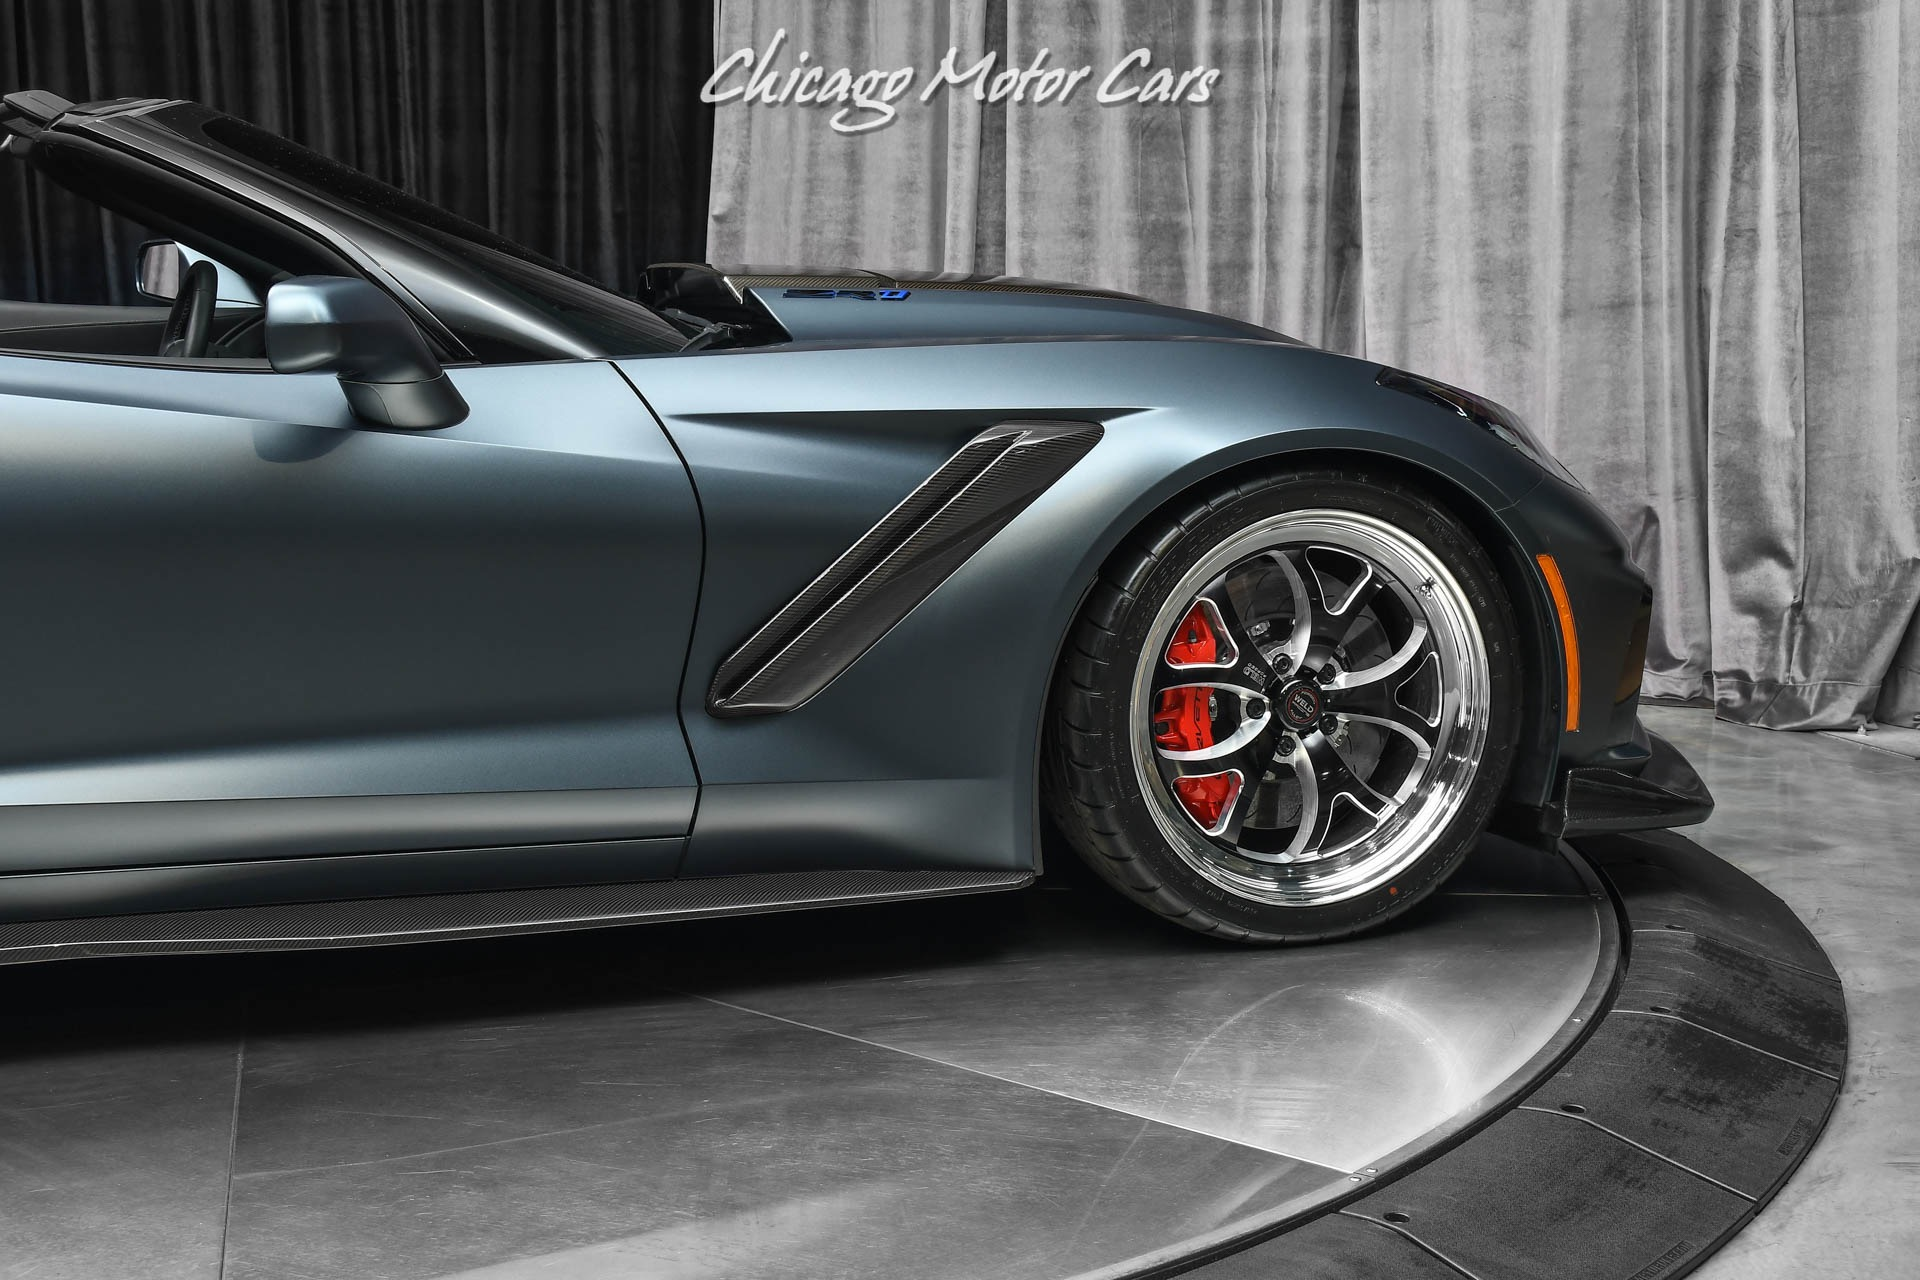 Used-2019-Chevrolet-Corvette-ZR1-Coupe-1250HP-LOW-MILES-TASTEFULLY-UPGRADED